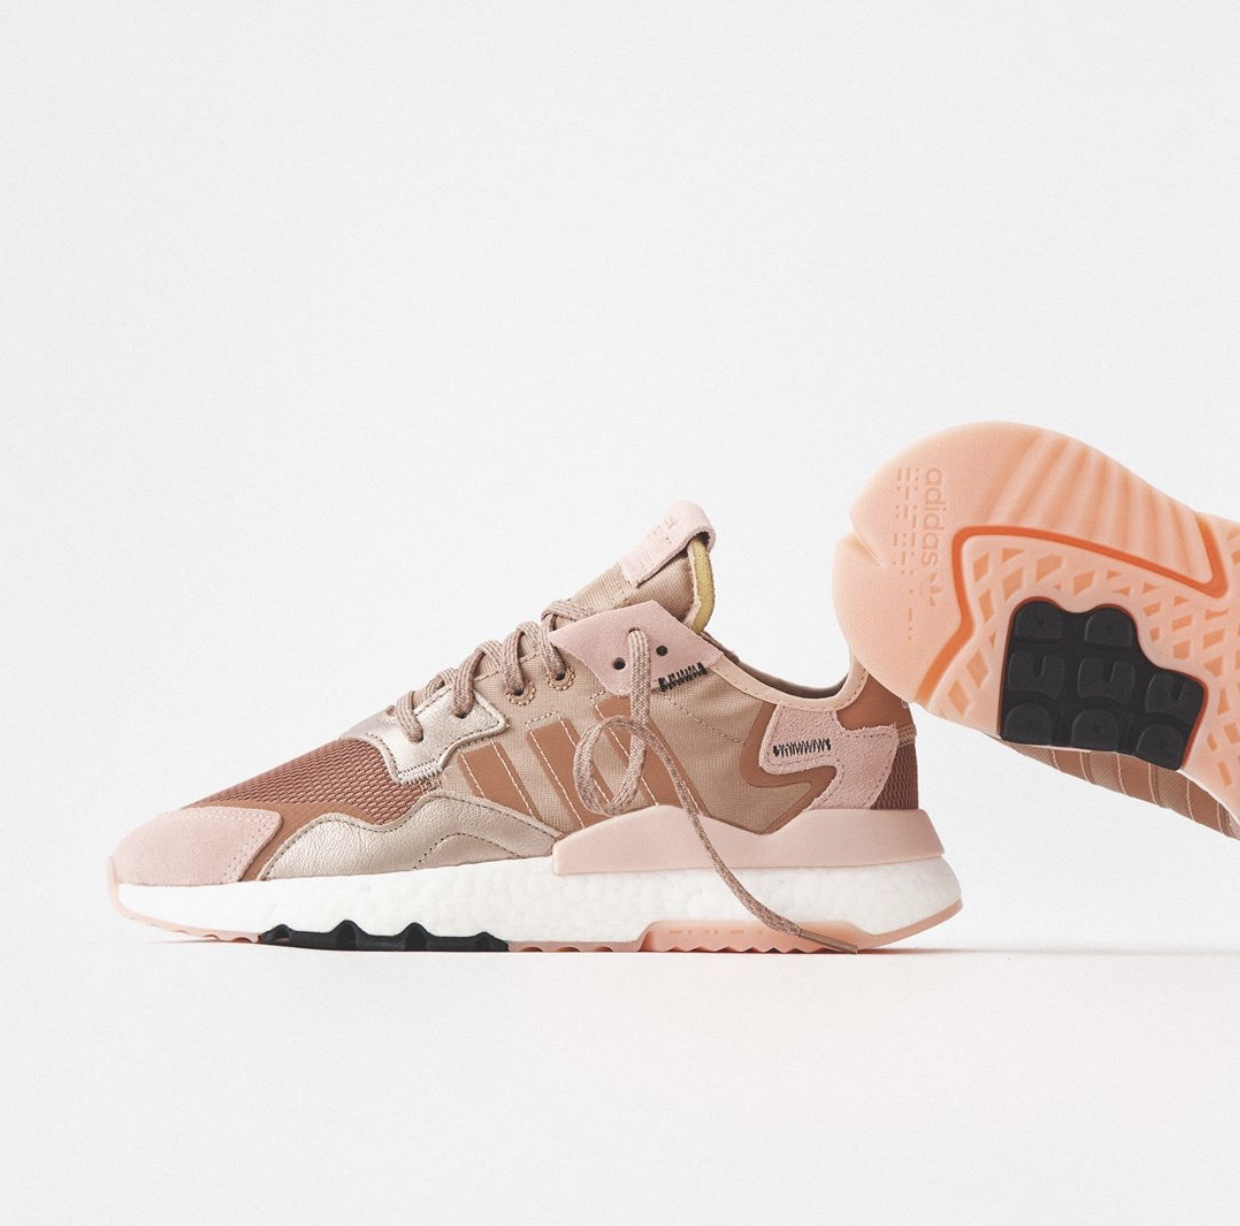 adidas nite jogger rose gold metallic